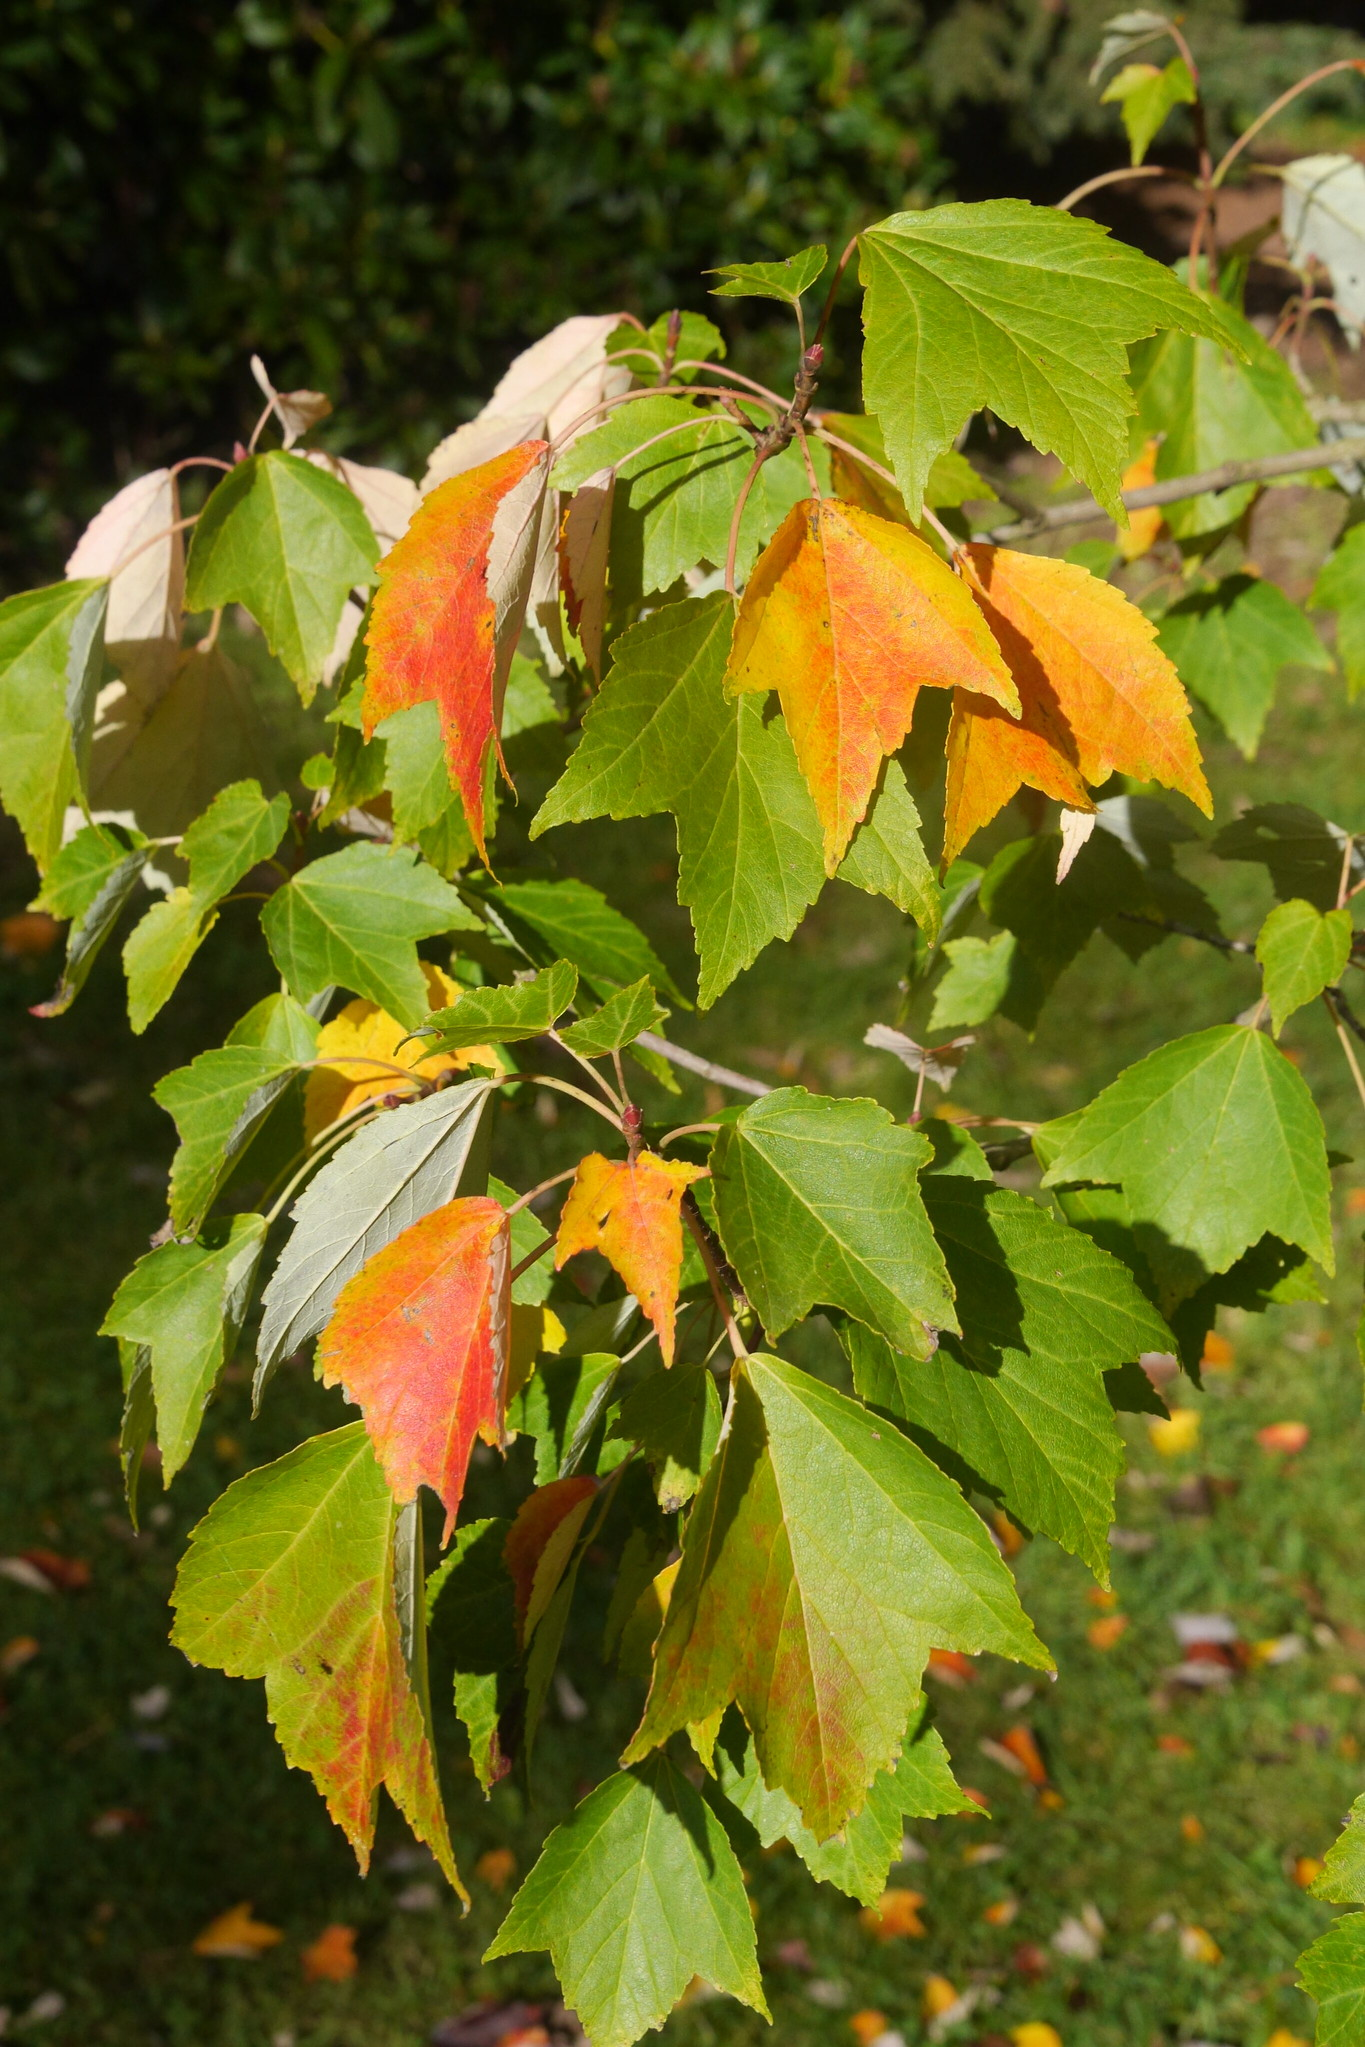 Image of a Japanese red maple (Acer pycnanthum).